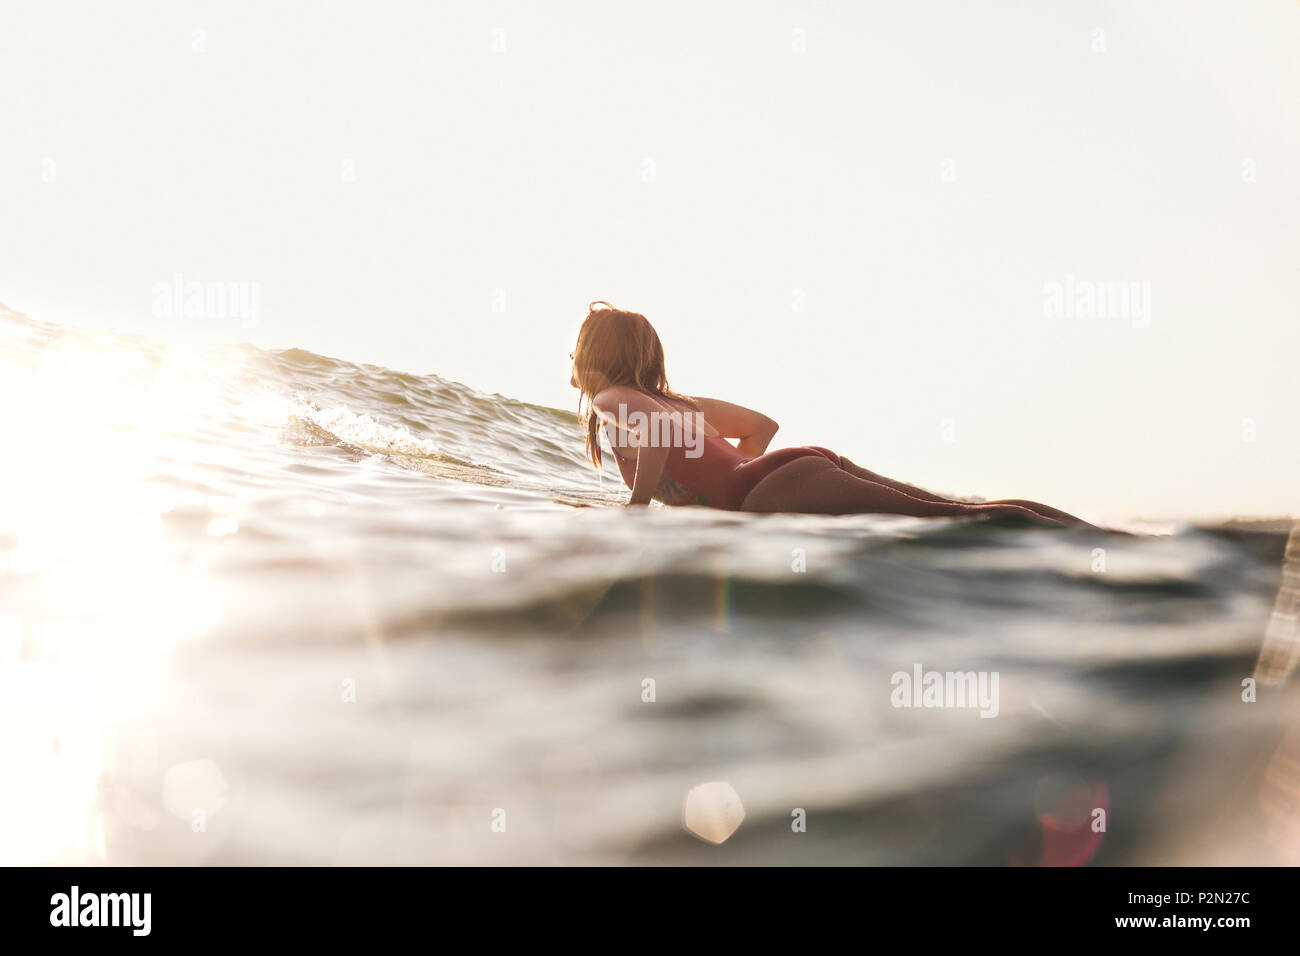 side view of woman in swimming suit surfing in ocean - Stock Image